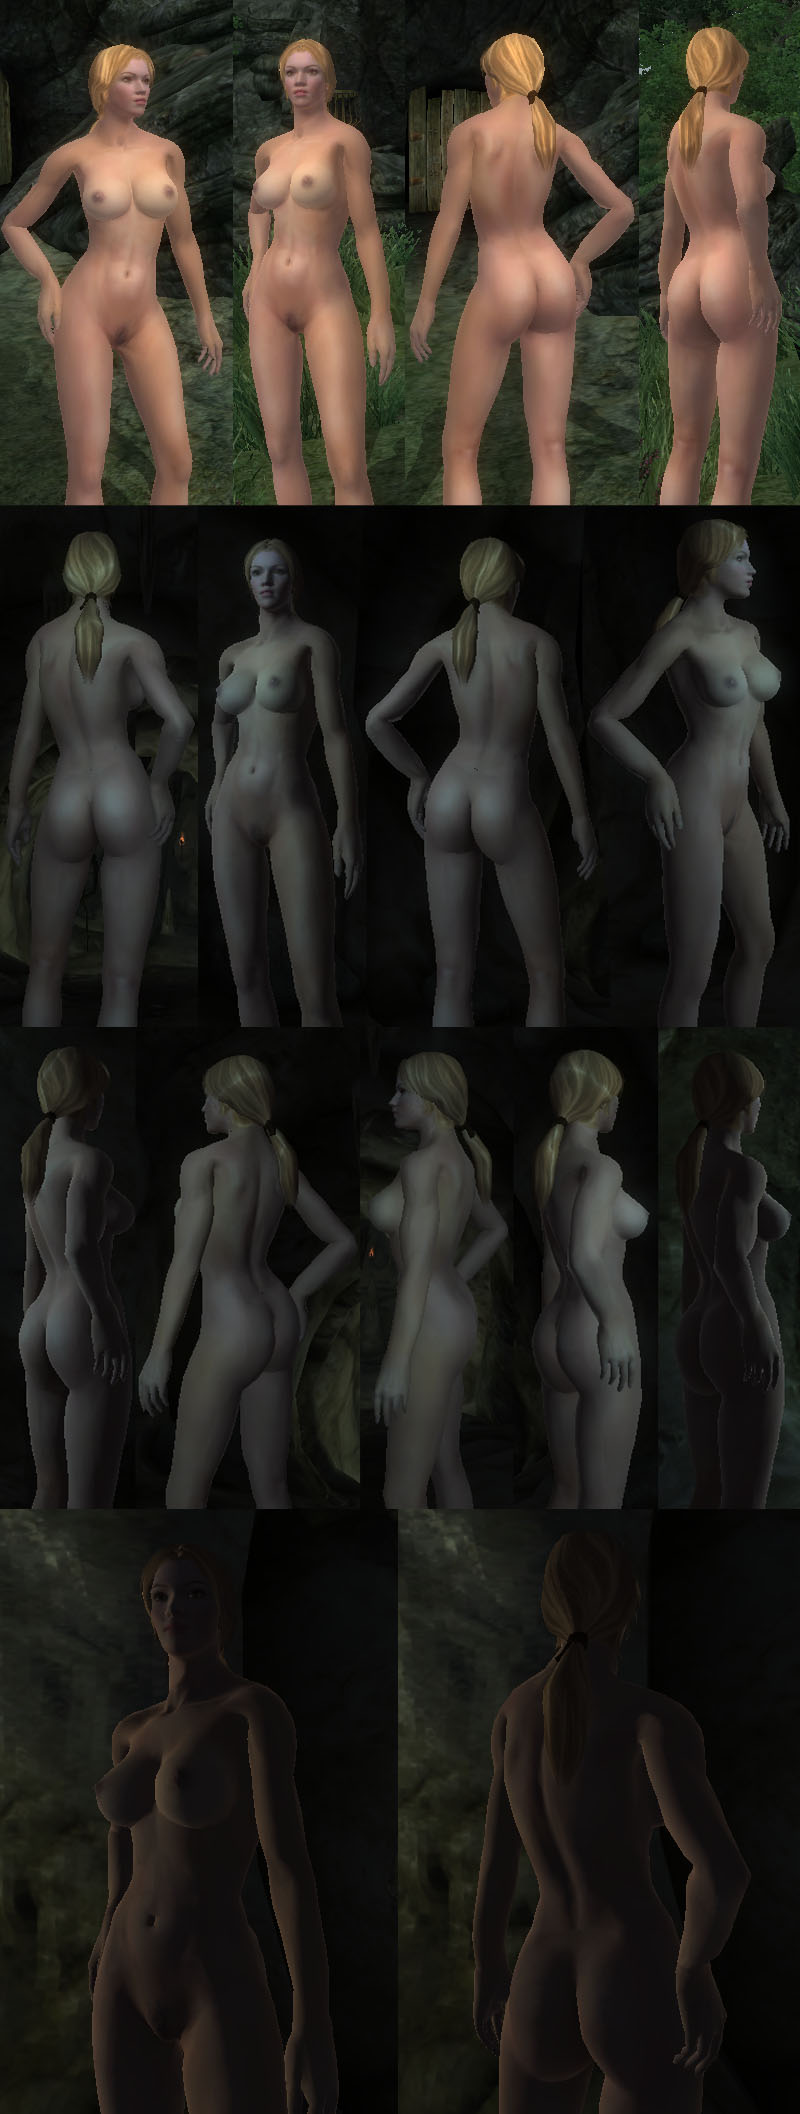 3D nakedskin pics tomb raider-nude-patch shtm! sexy video